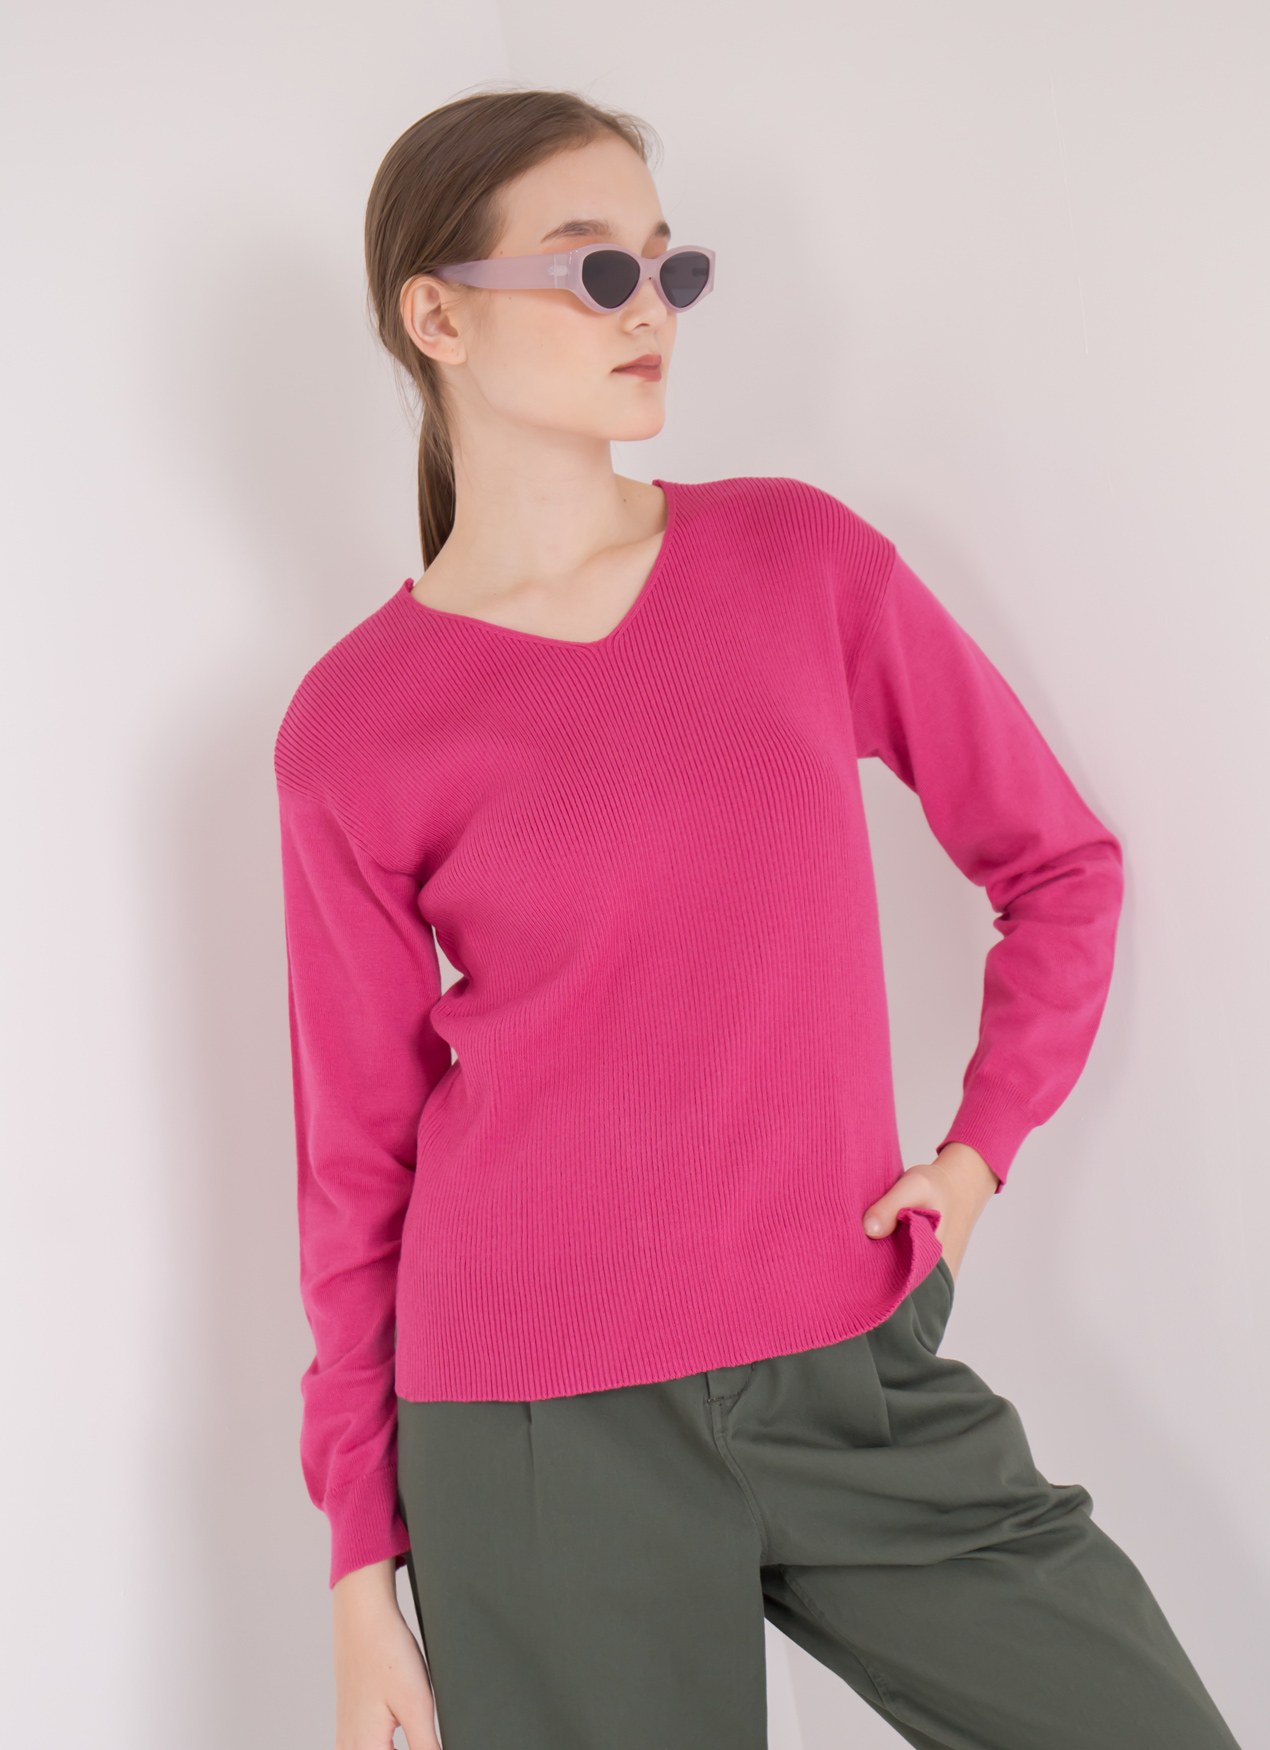 Green Parks Gia Sweater - Pink